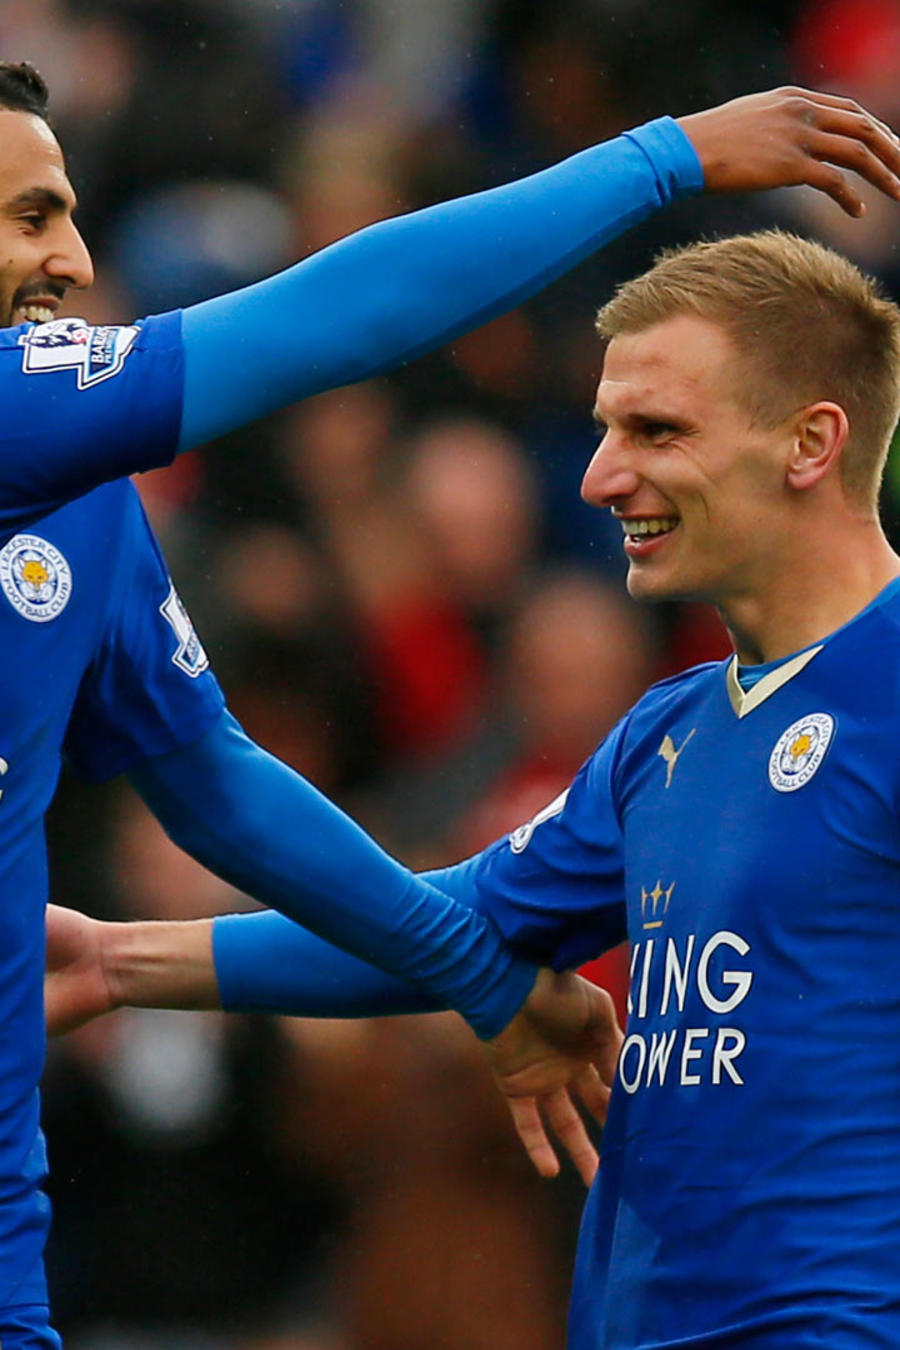 equipo Leicester City